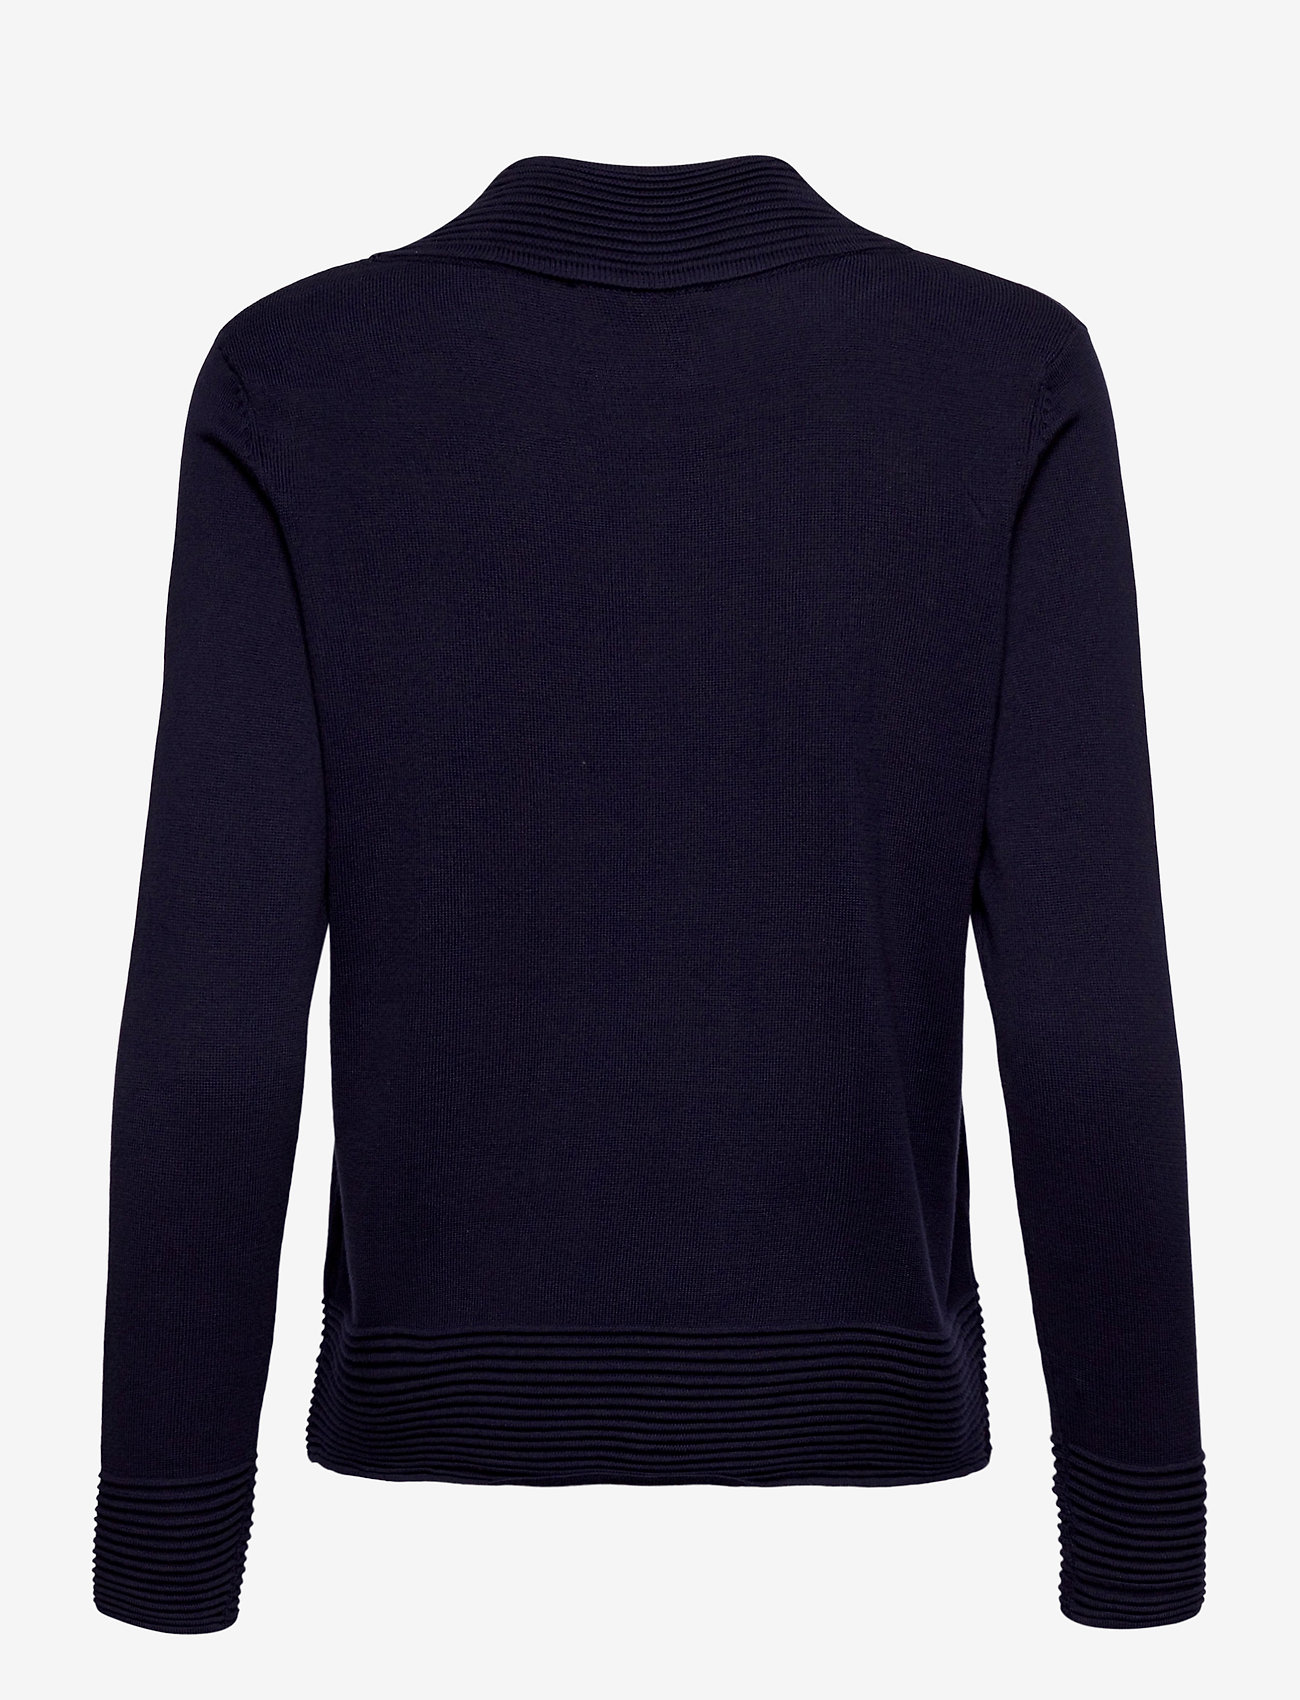 Esprit Casual - Sweaters - gensere - navy - 1